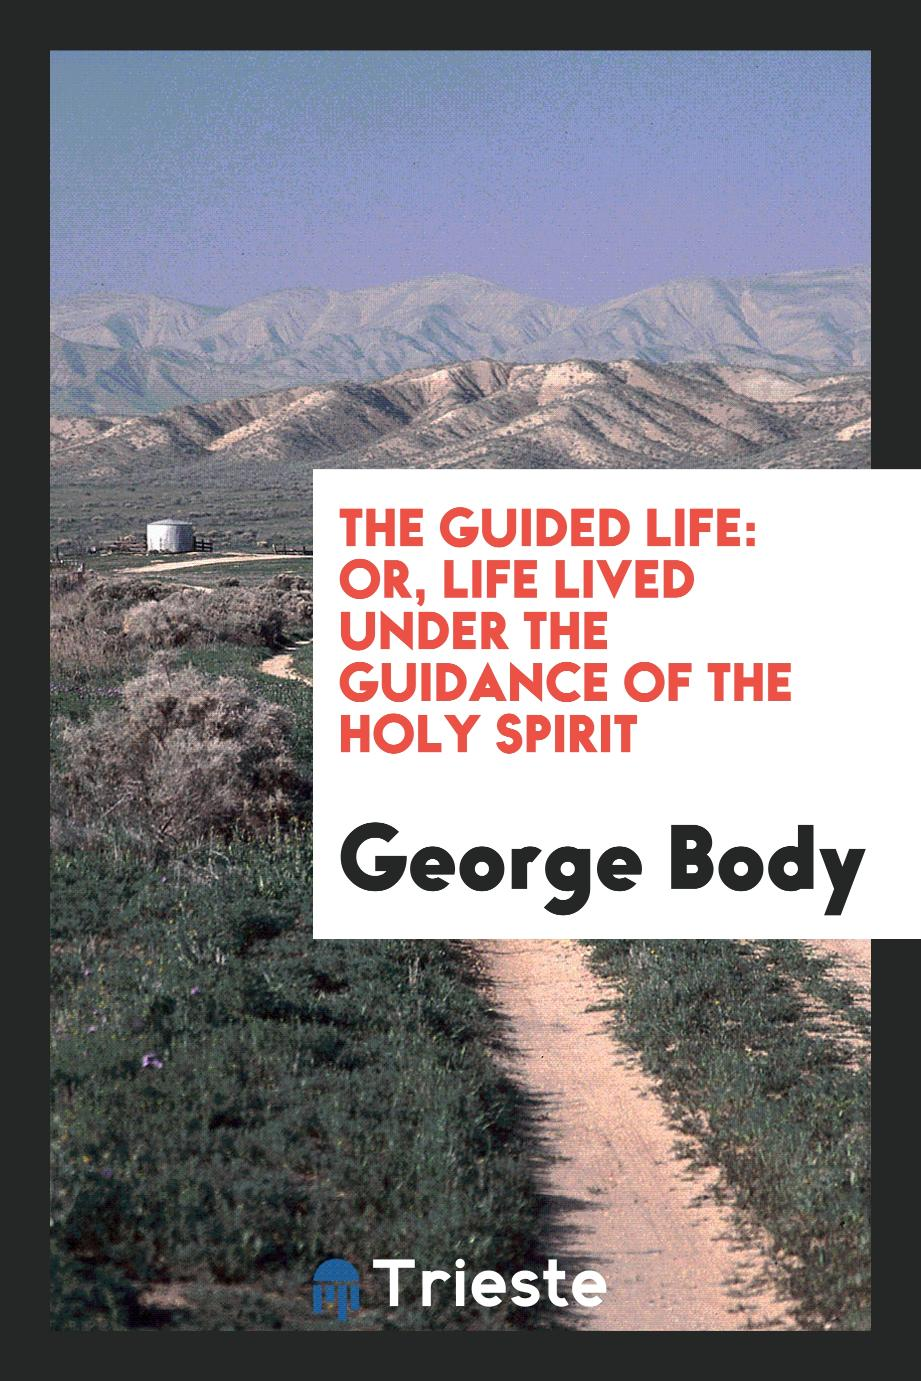 The Guided Life: Or, Life Lived Under the Guidance of the Holy Spirit